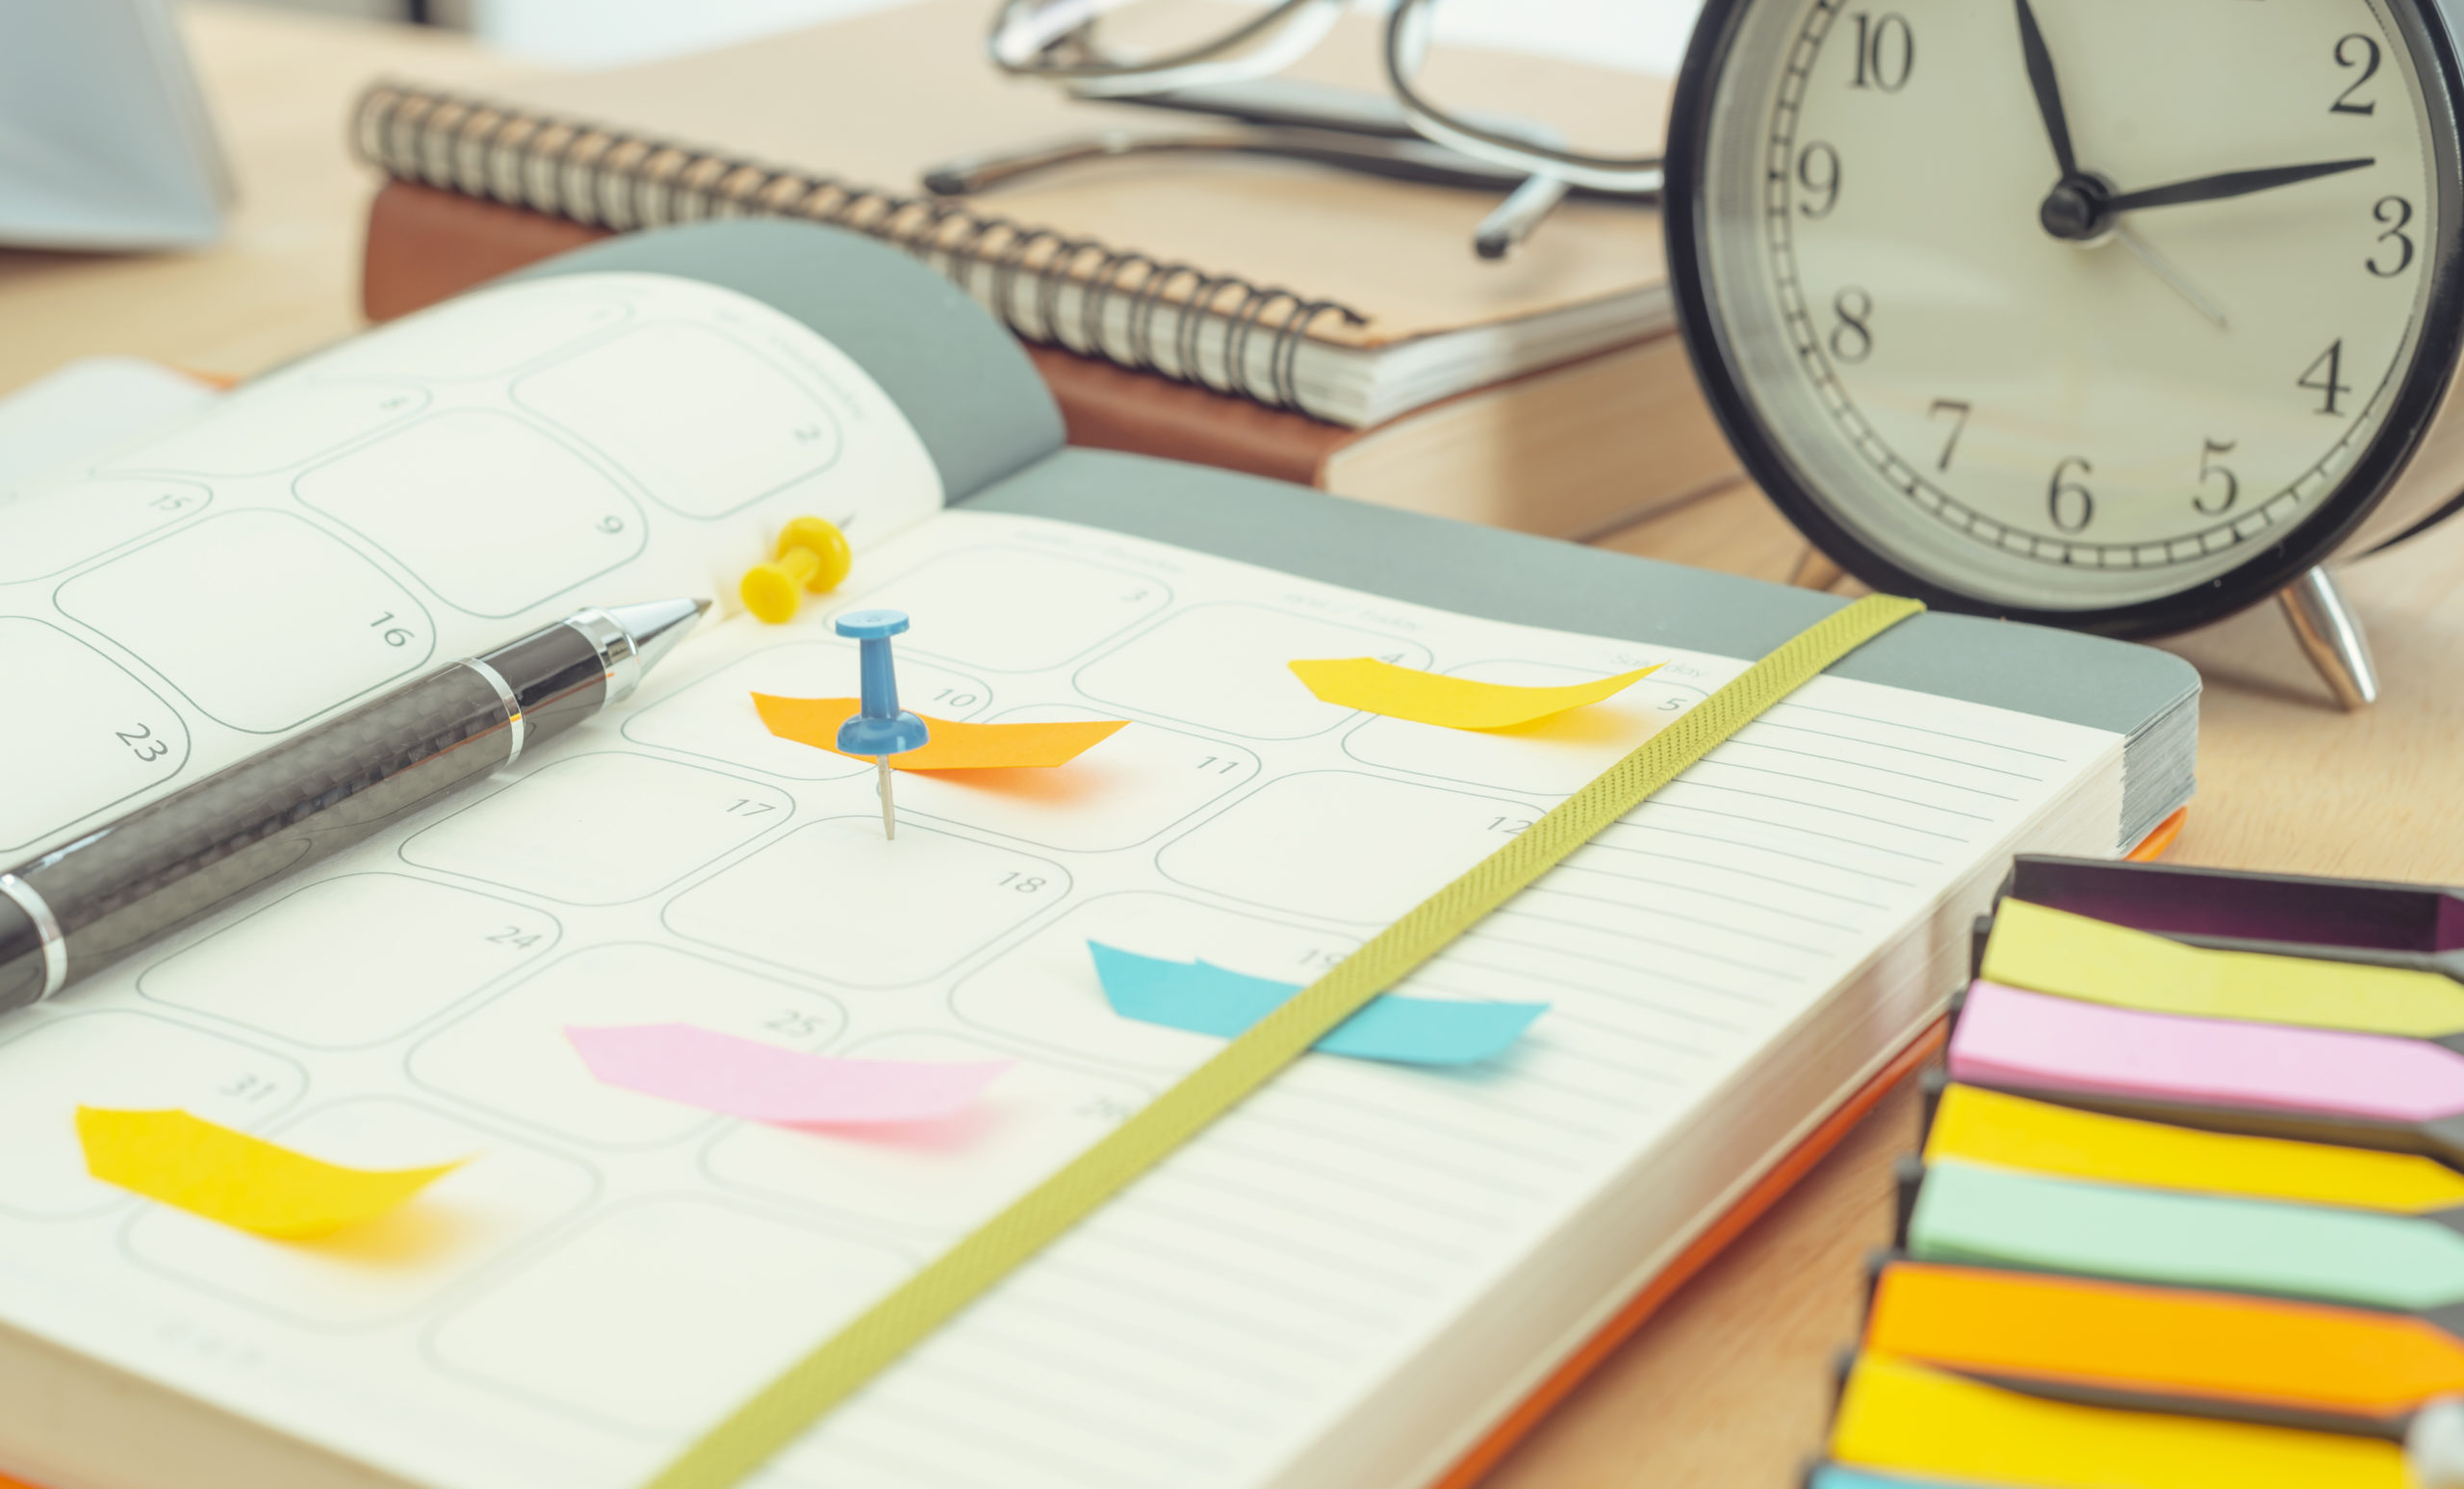 Daily planner open on a messy desk with pens, pins, glasses, sticky notes, and a clock